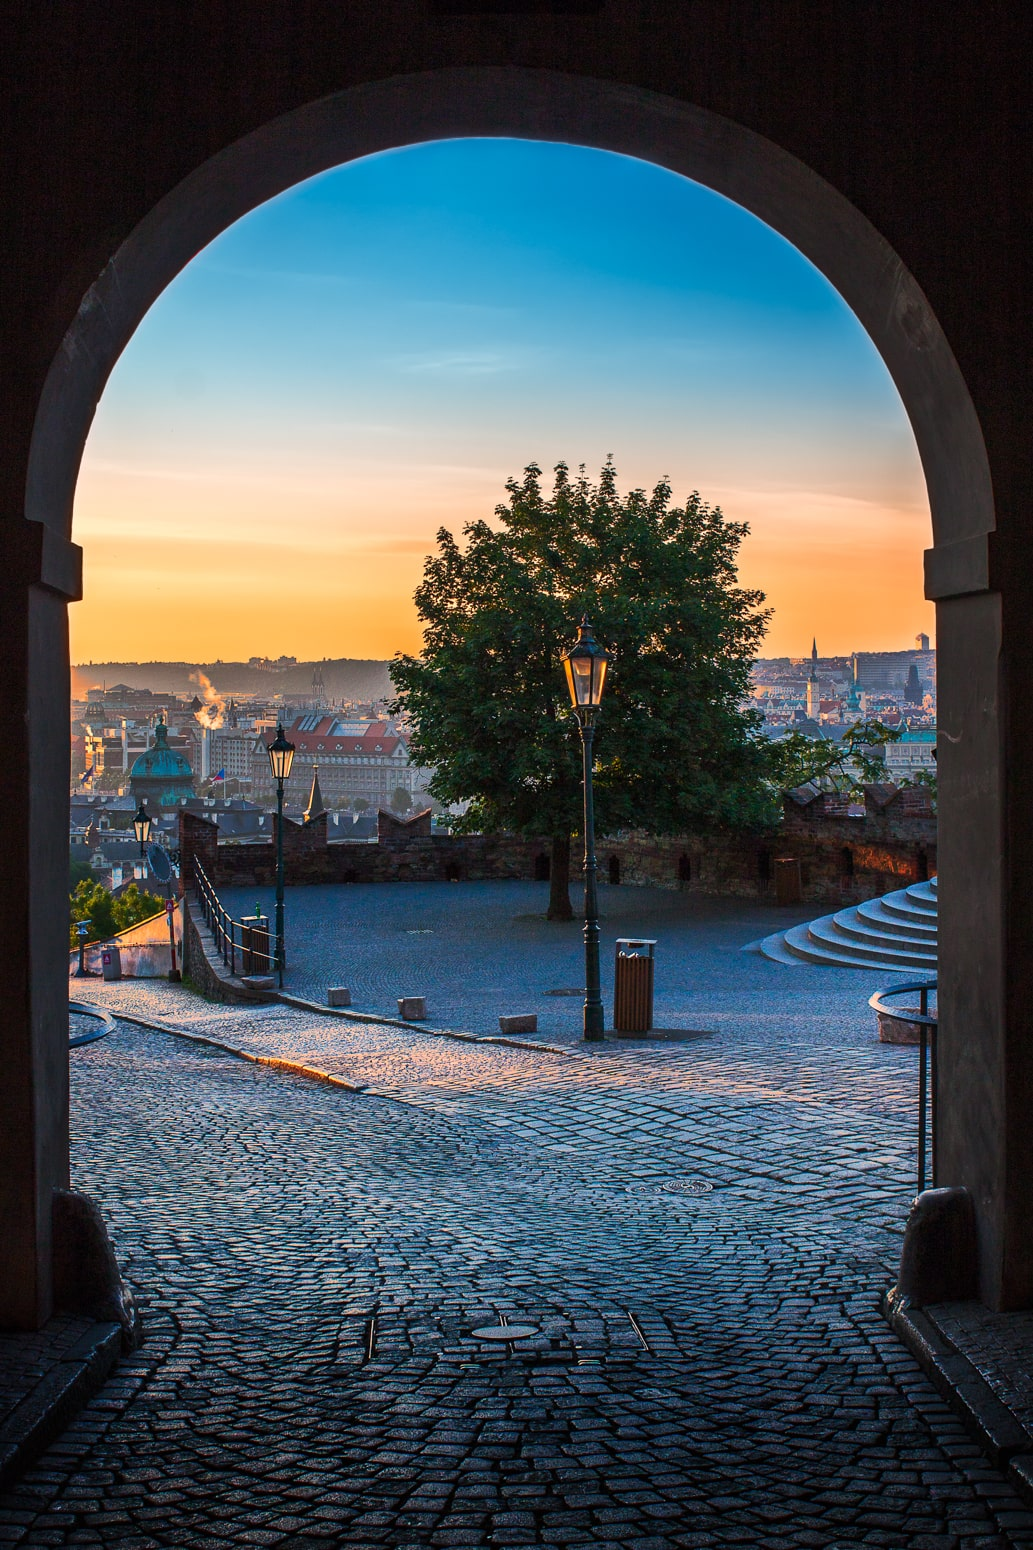 View from Prague Castle Gate, Czech Republic at sunrise in the early morning hours.